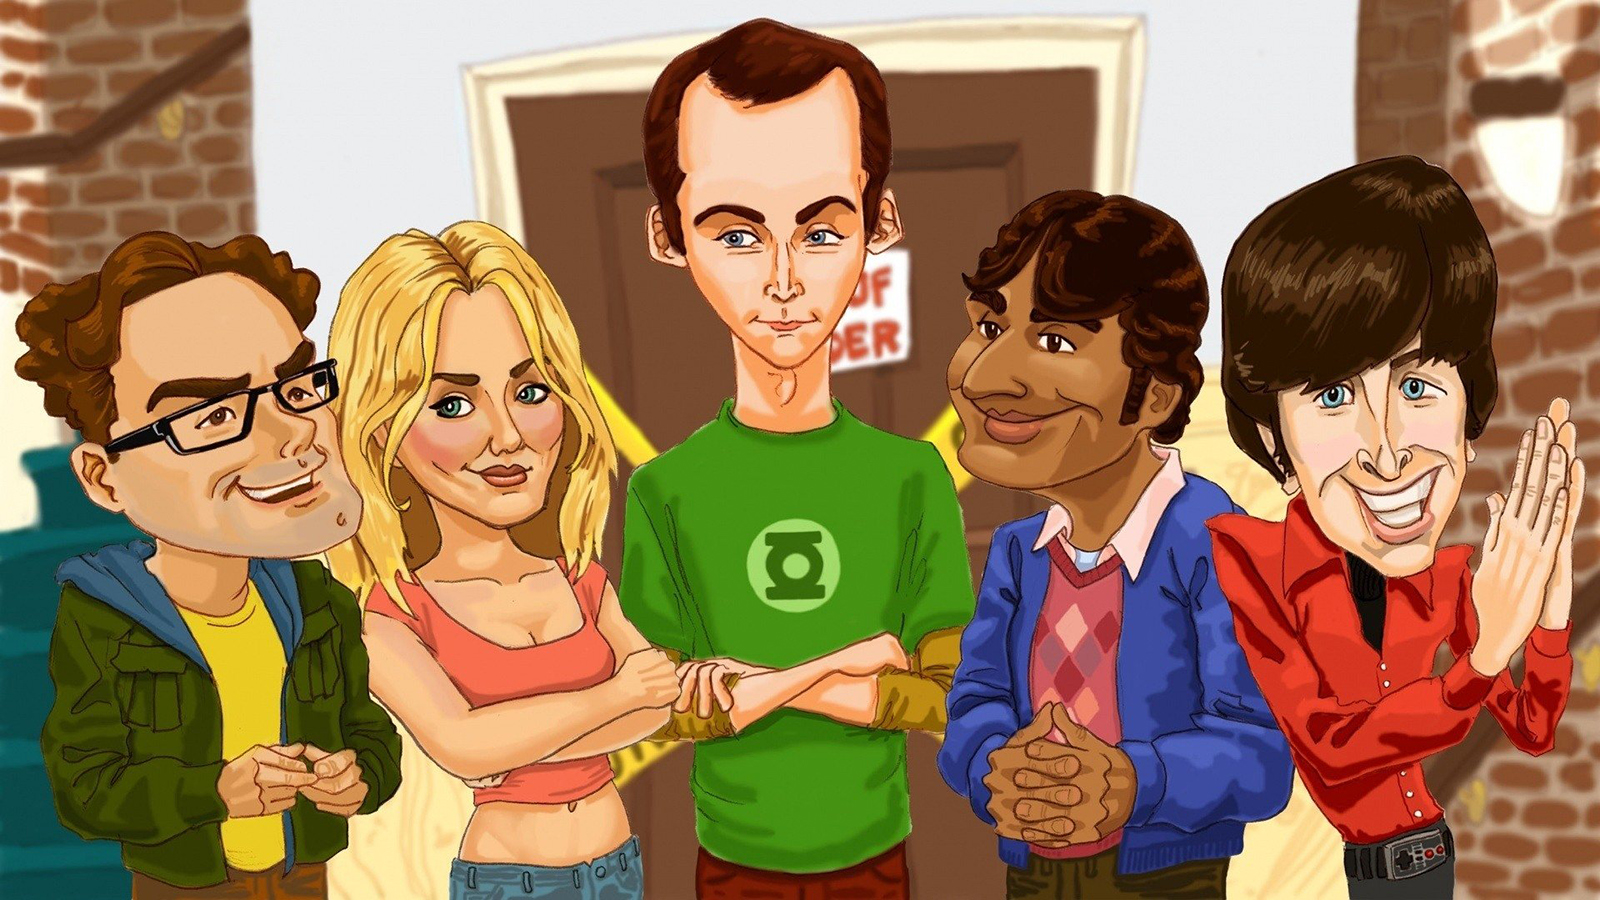 http://4.bp.blogspot.com/-0Q0F99UBPxU/URY1p4bOEWI/AAAAAAAAJLM/BAyJ1Kn1EZw/s1600/wallpaper-the-big-bang-theory-tbbt-8.jpg